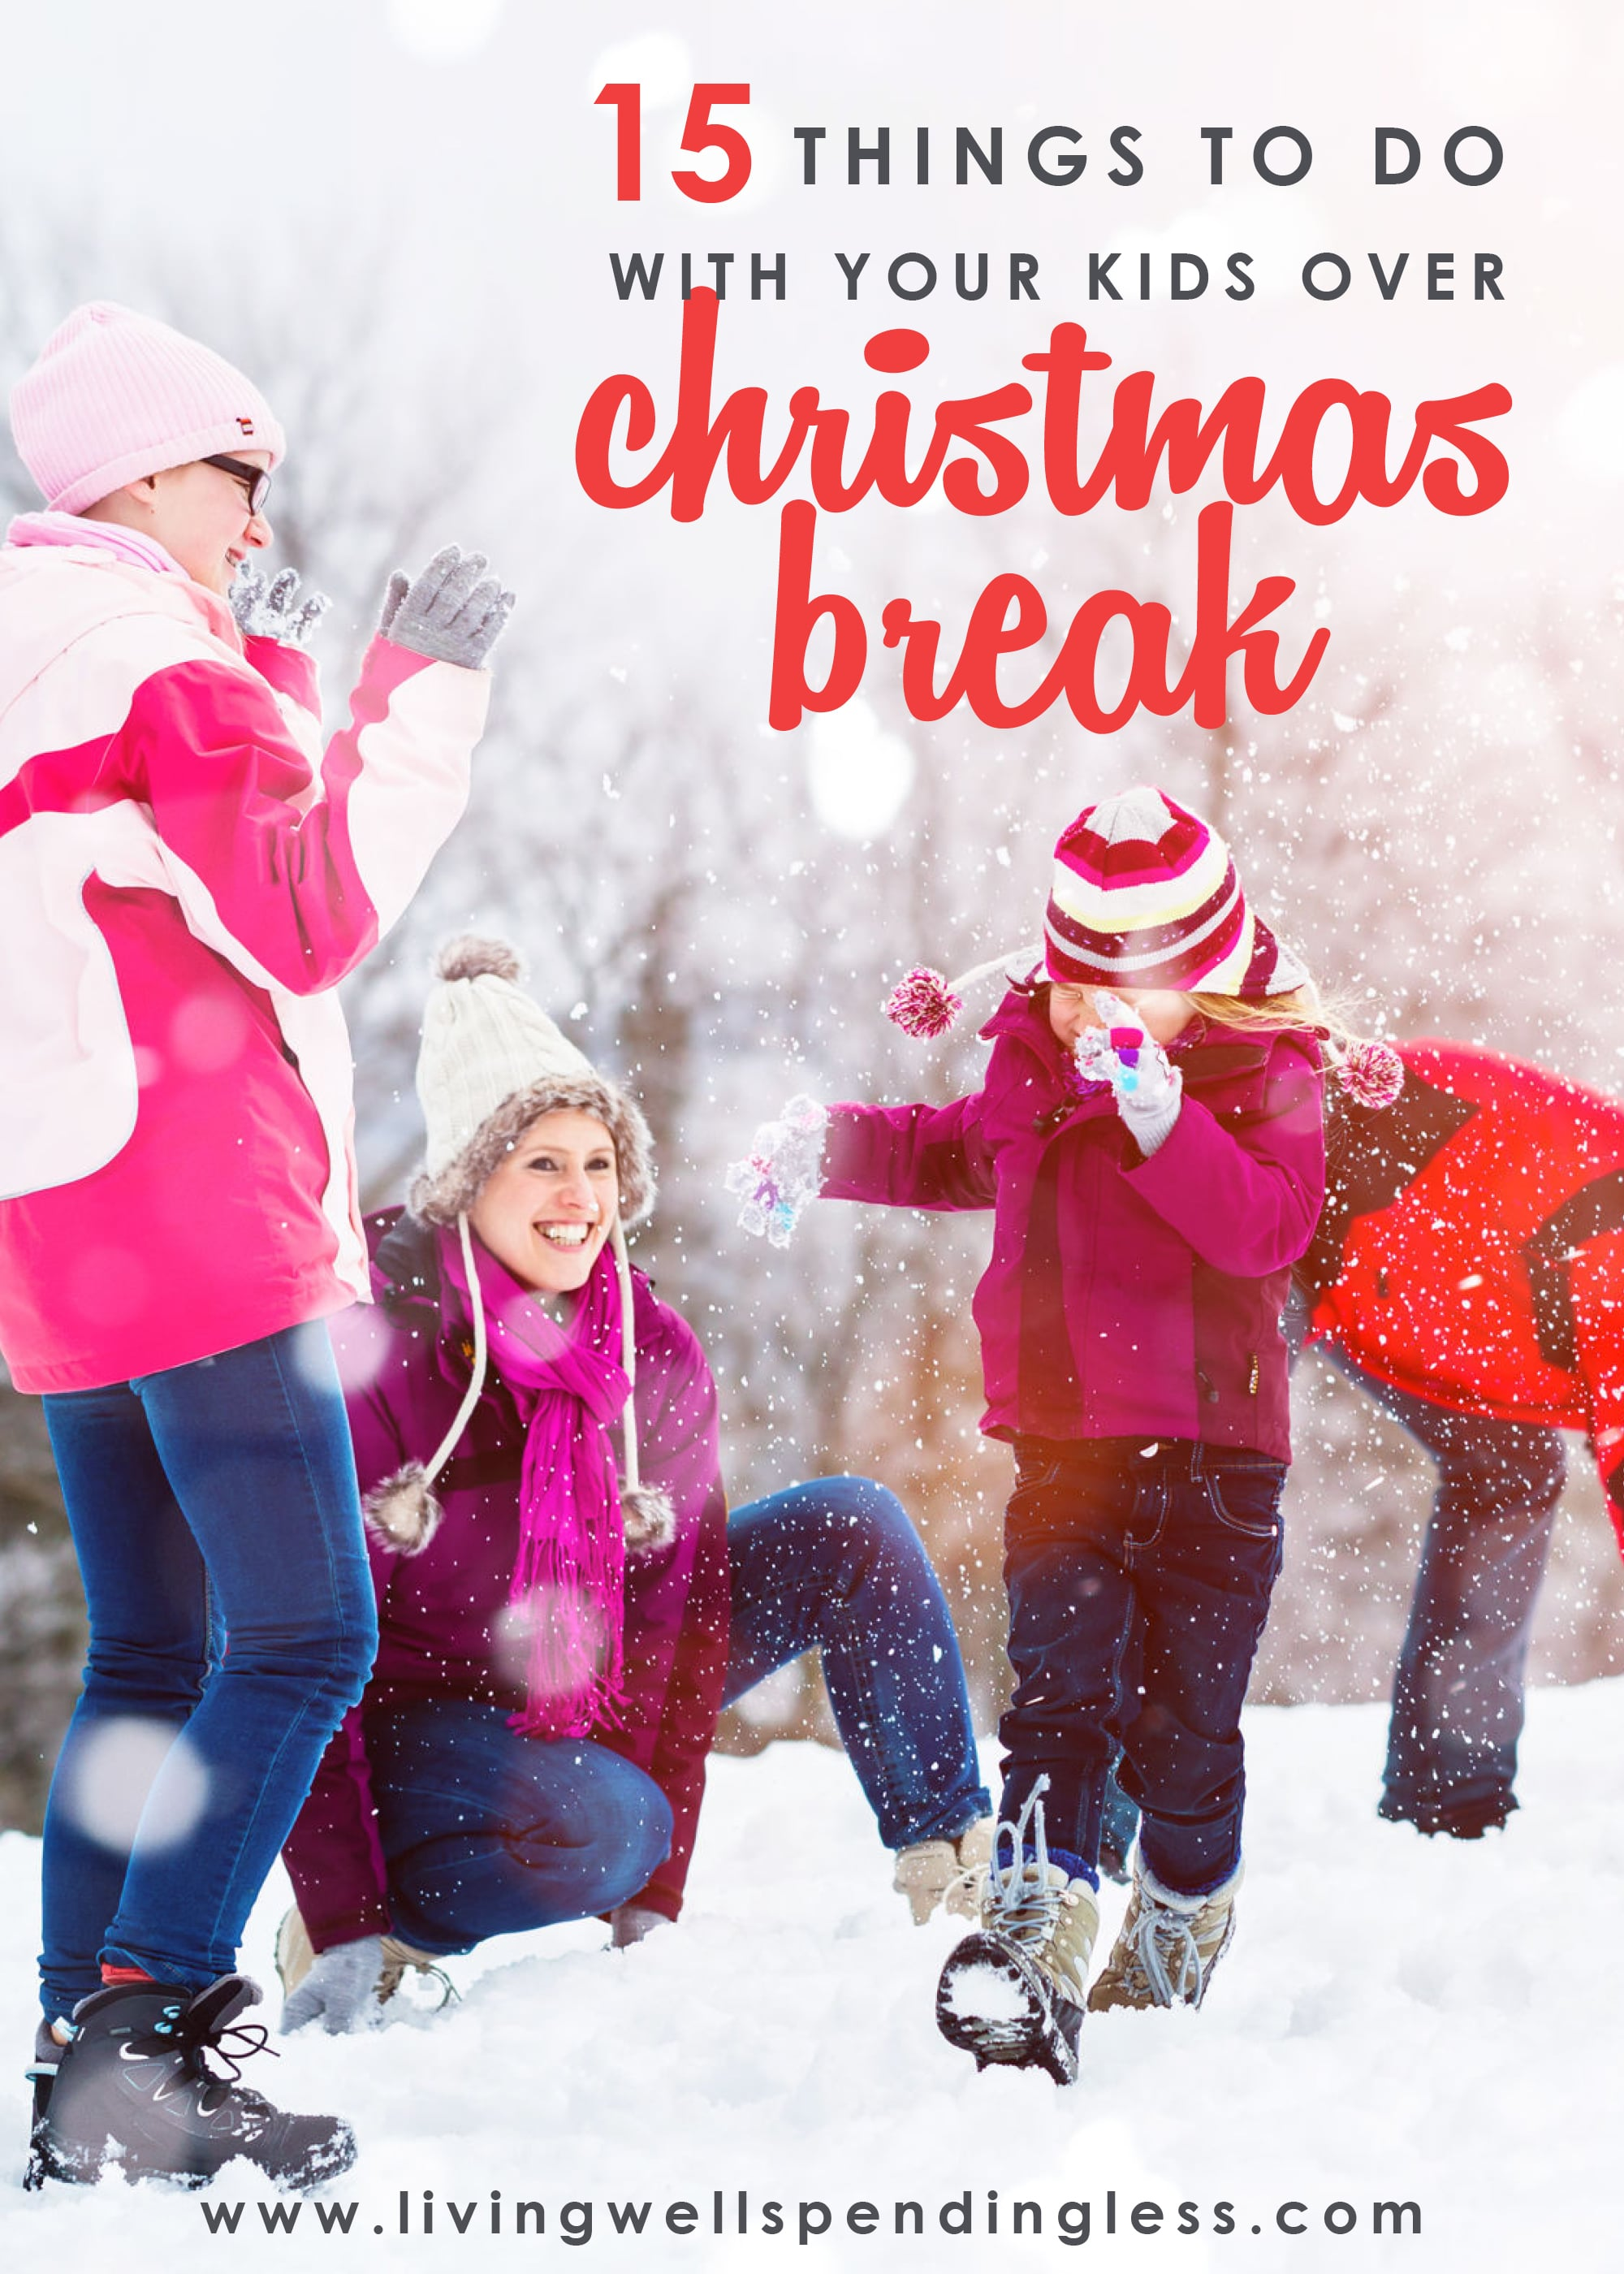 15 Things to Do With Your Kids Over Chrisymas Break